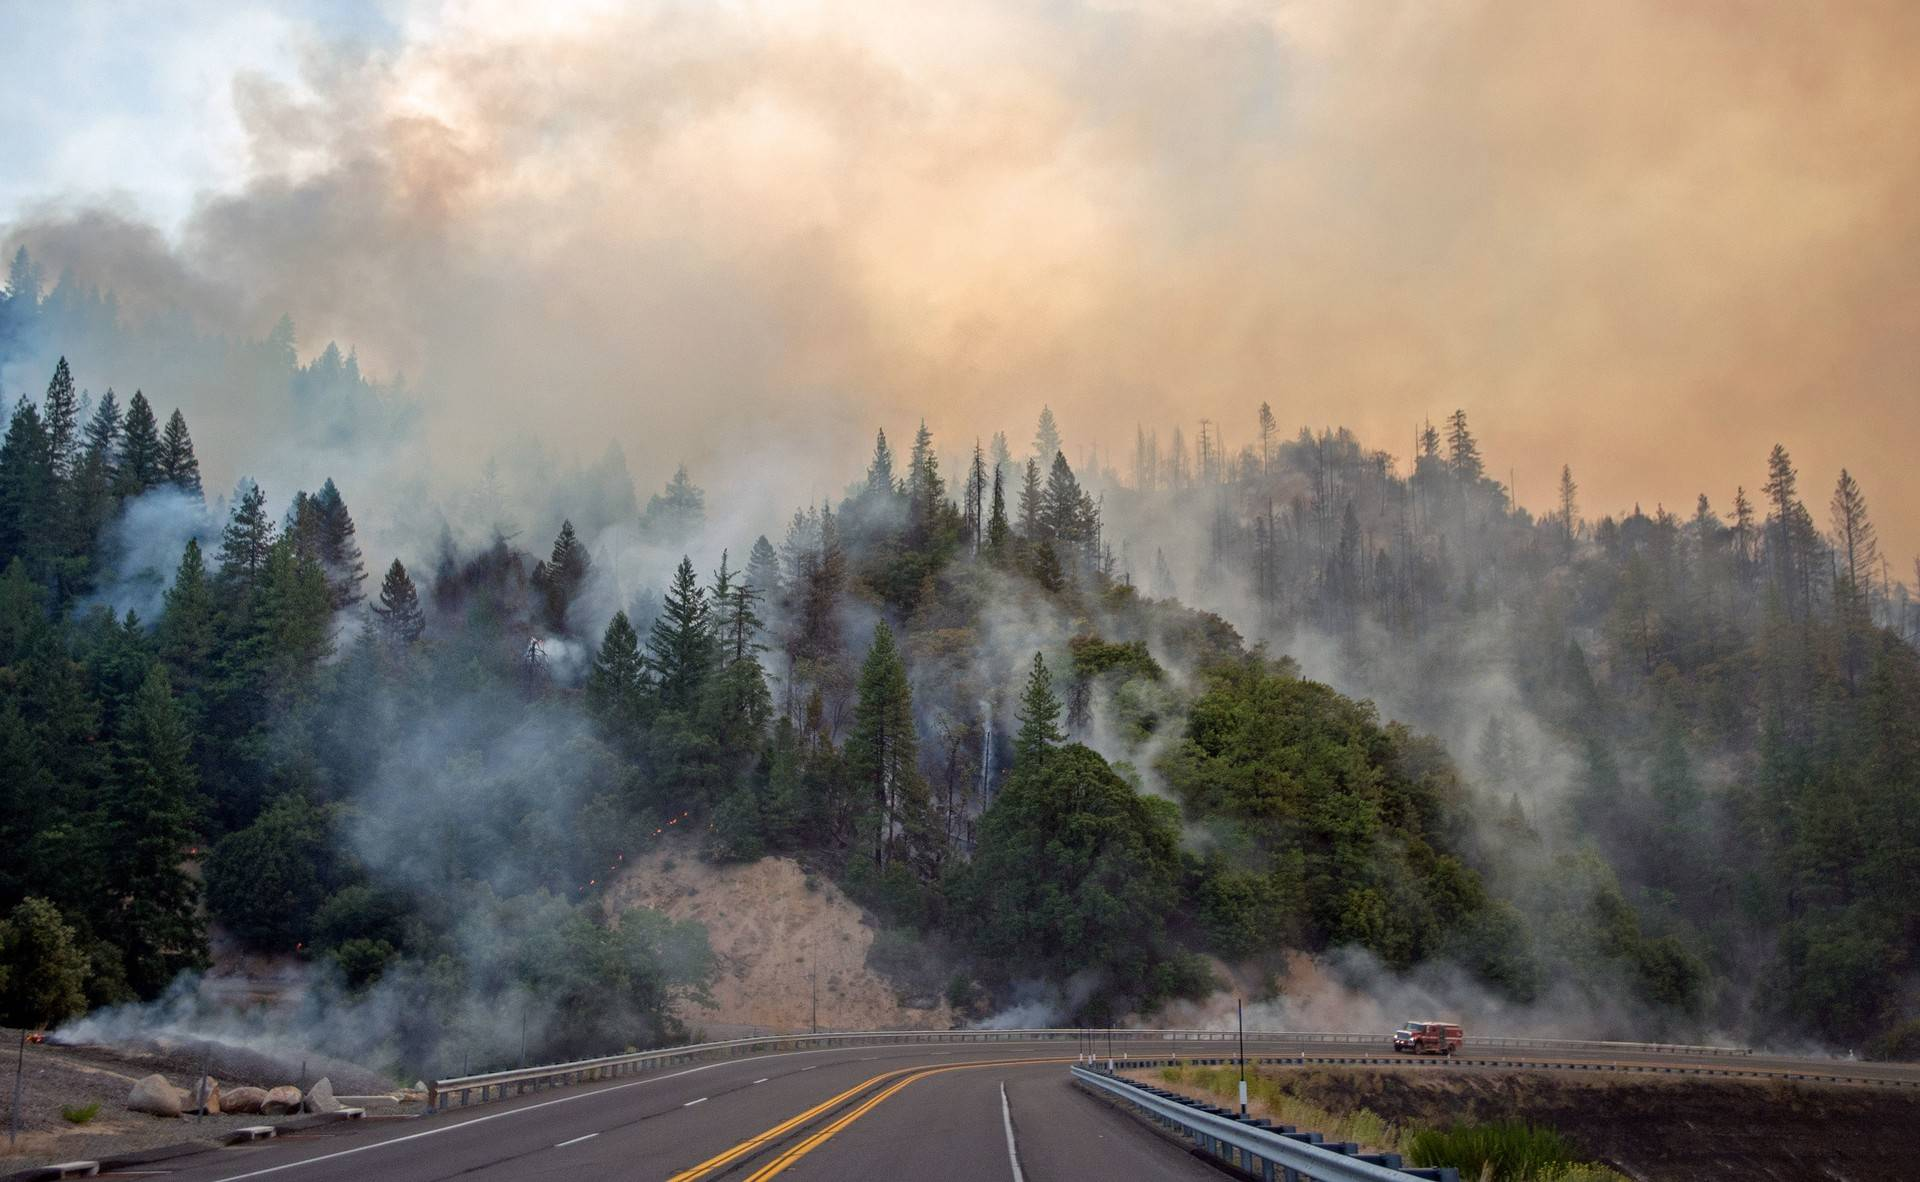 A fire truck drives along Highway 299 as the Carr Fire continues to burn near Whiskeytown, California, on July 28, 2018. JOSH EDELSON/AFP/Getty Images